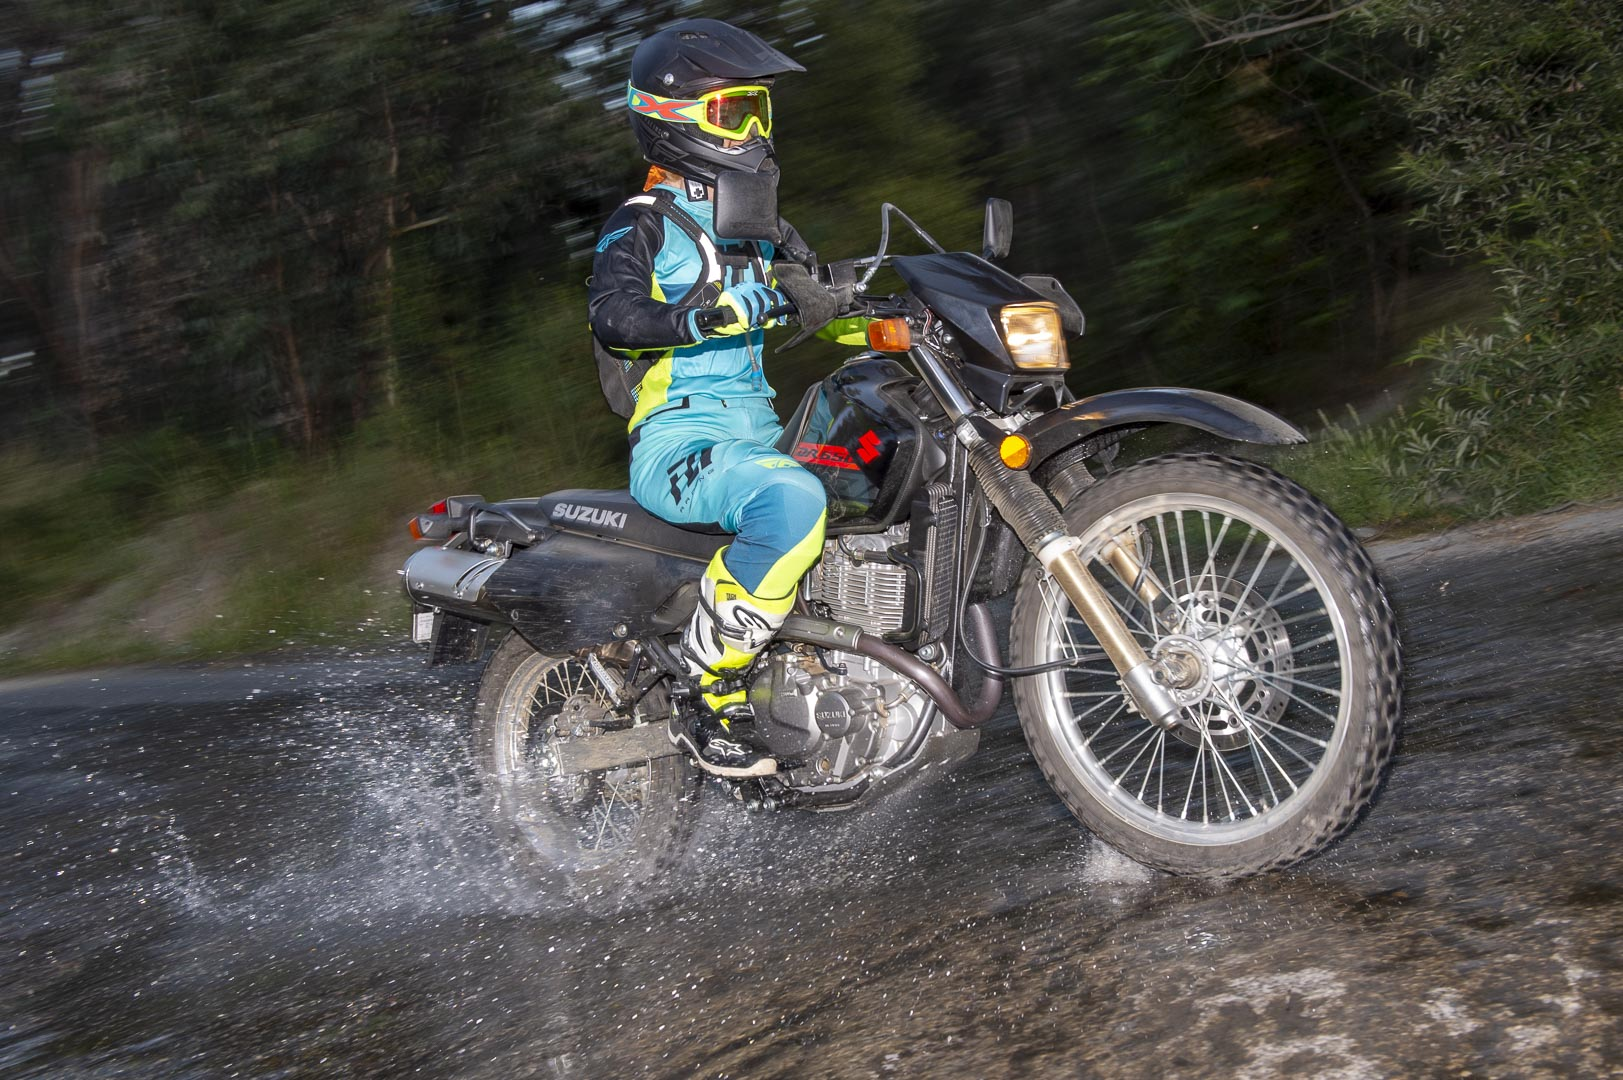 2019 Suzuki DR650S Review - dual sport motorcycle